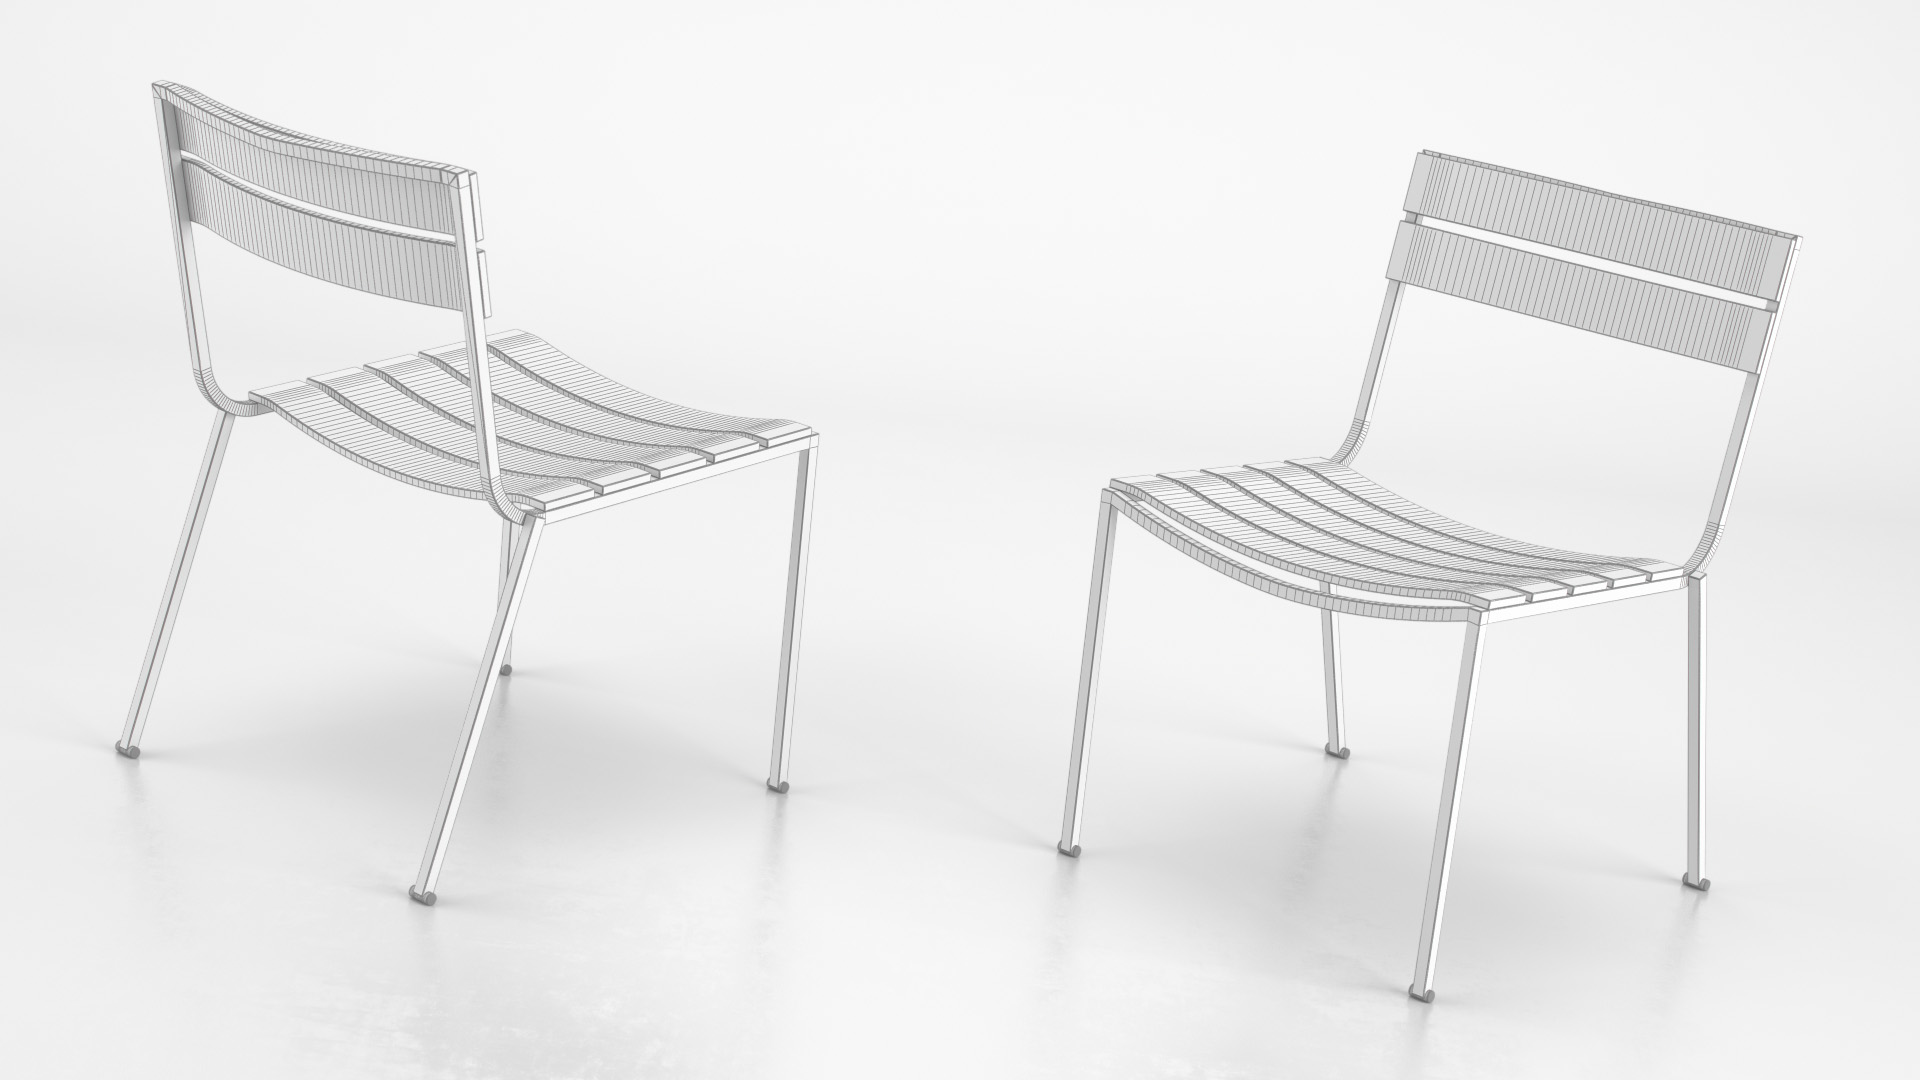 Coro_StackingChair_S05_WhiteSet_01_wire_0003